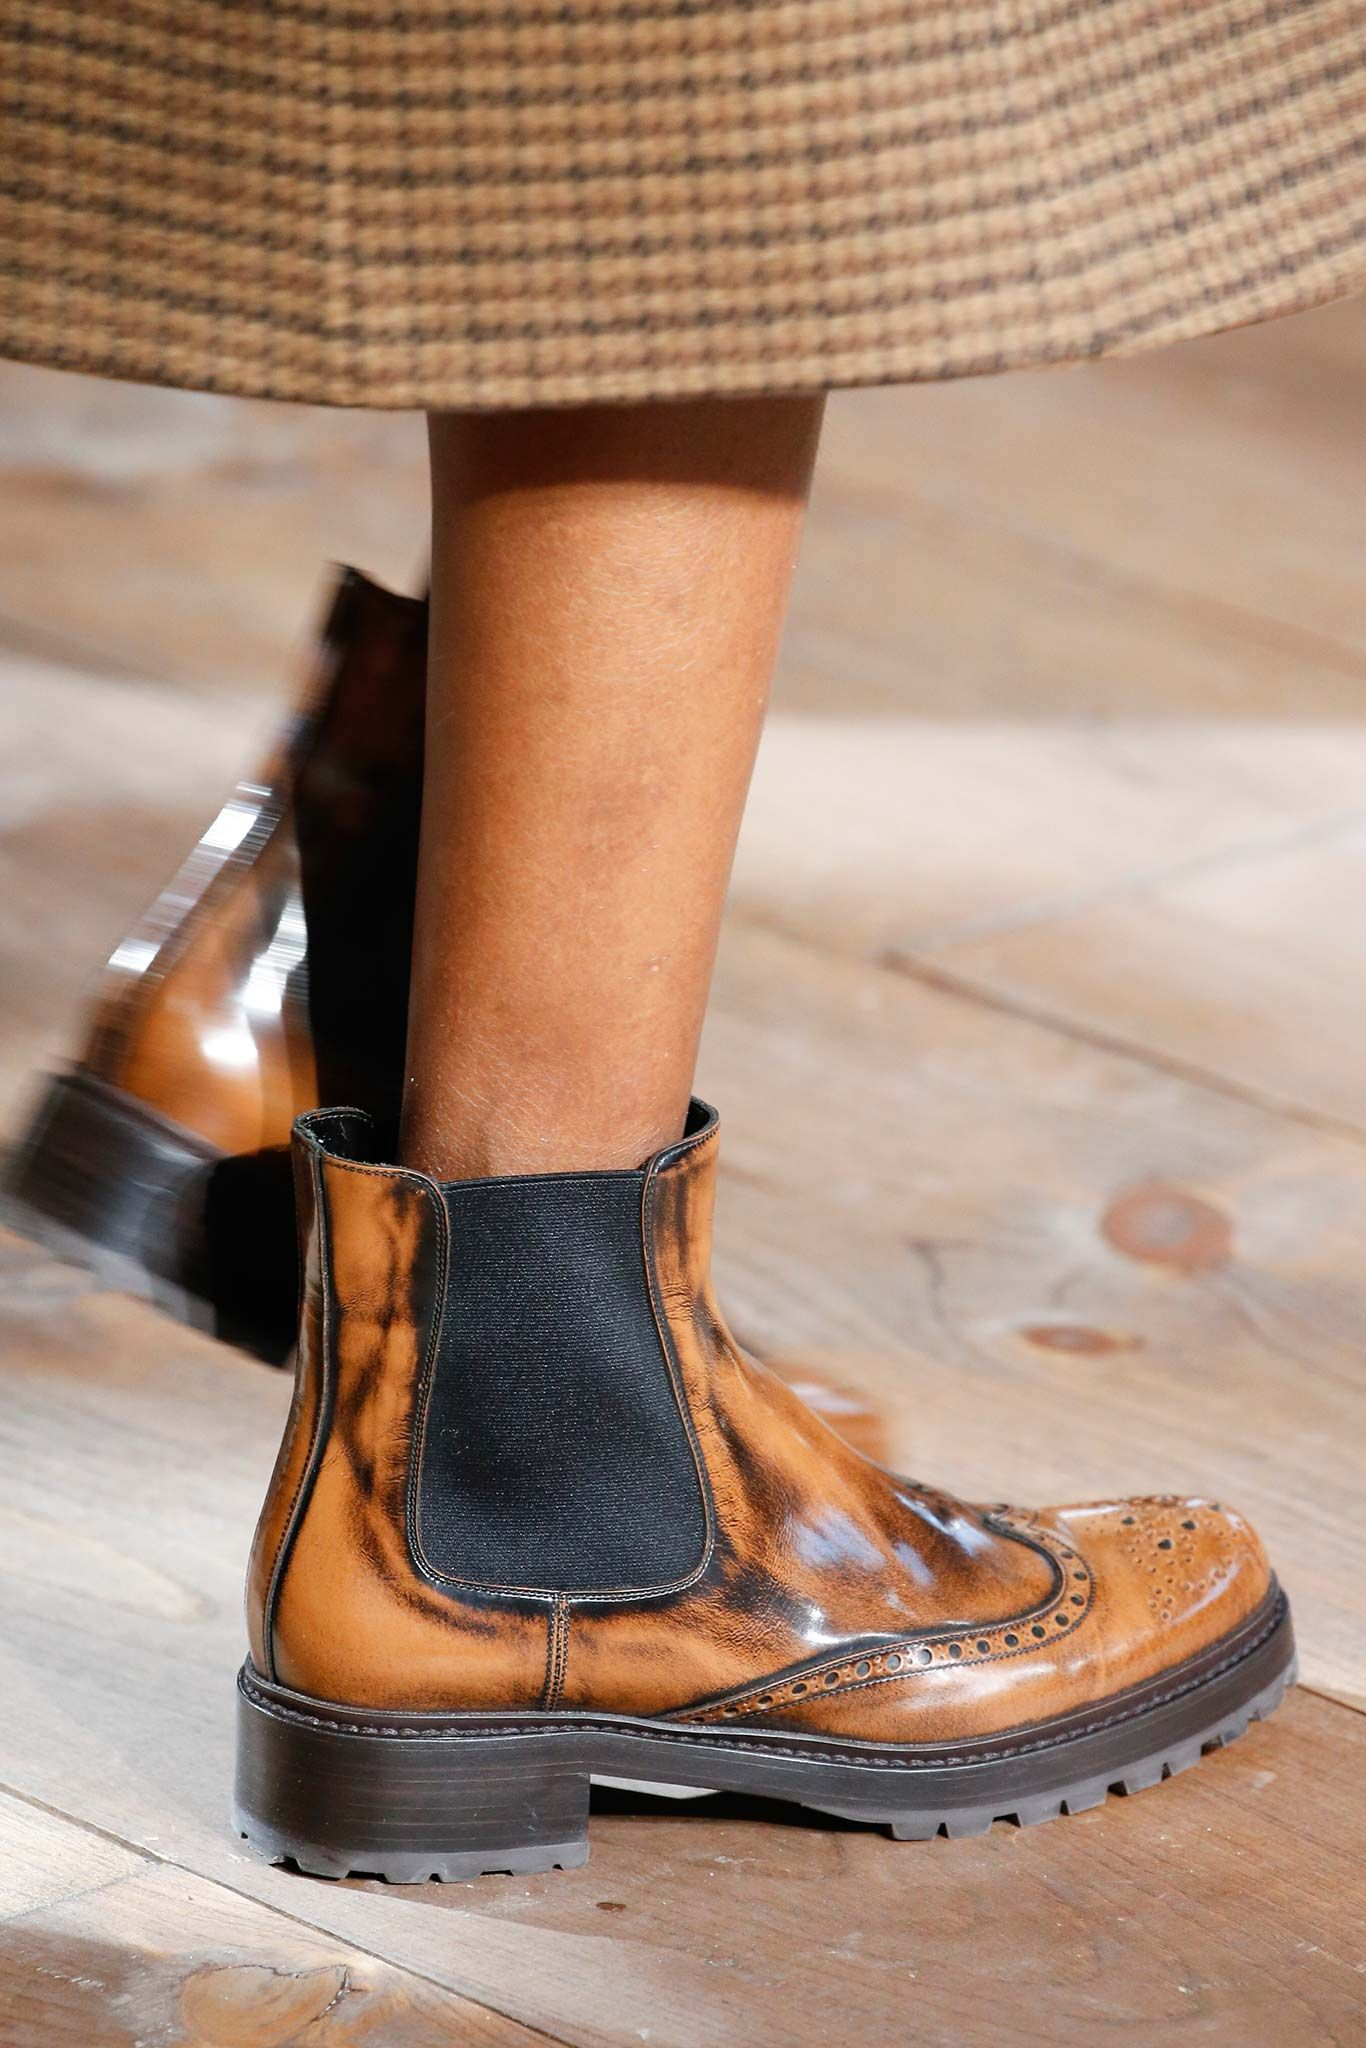 Michael Kors Fall 2015 Ready-to-Wear - Details - Gallery - Style.com